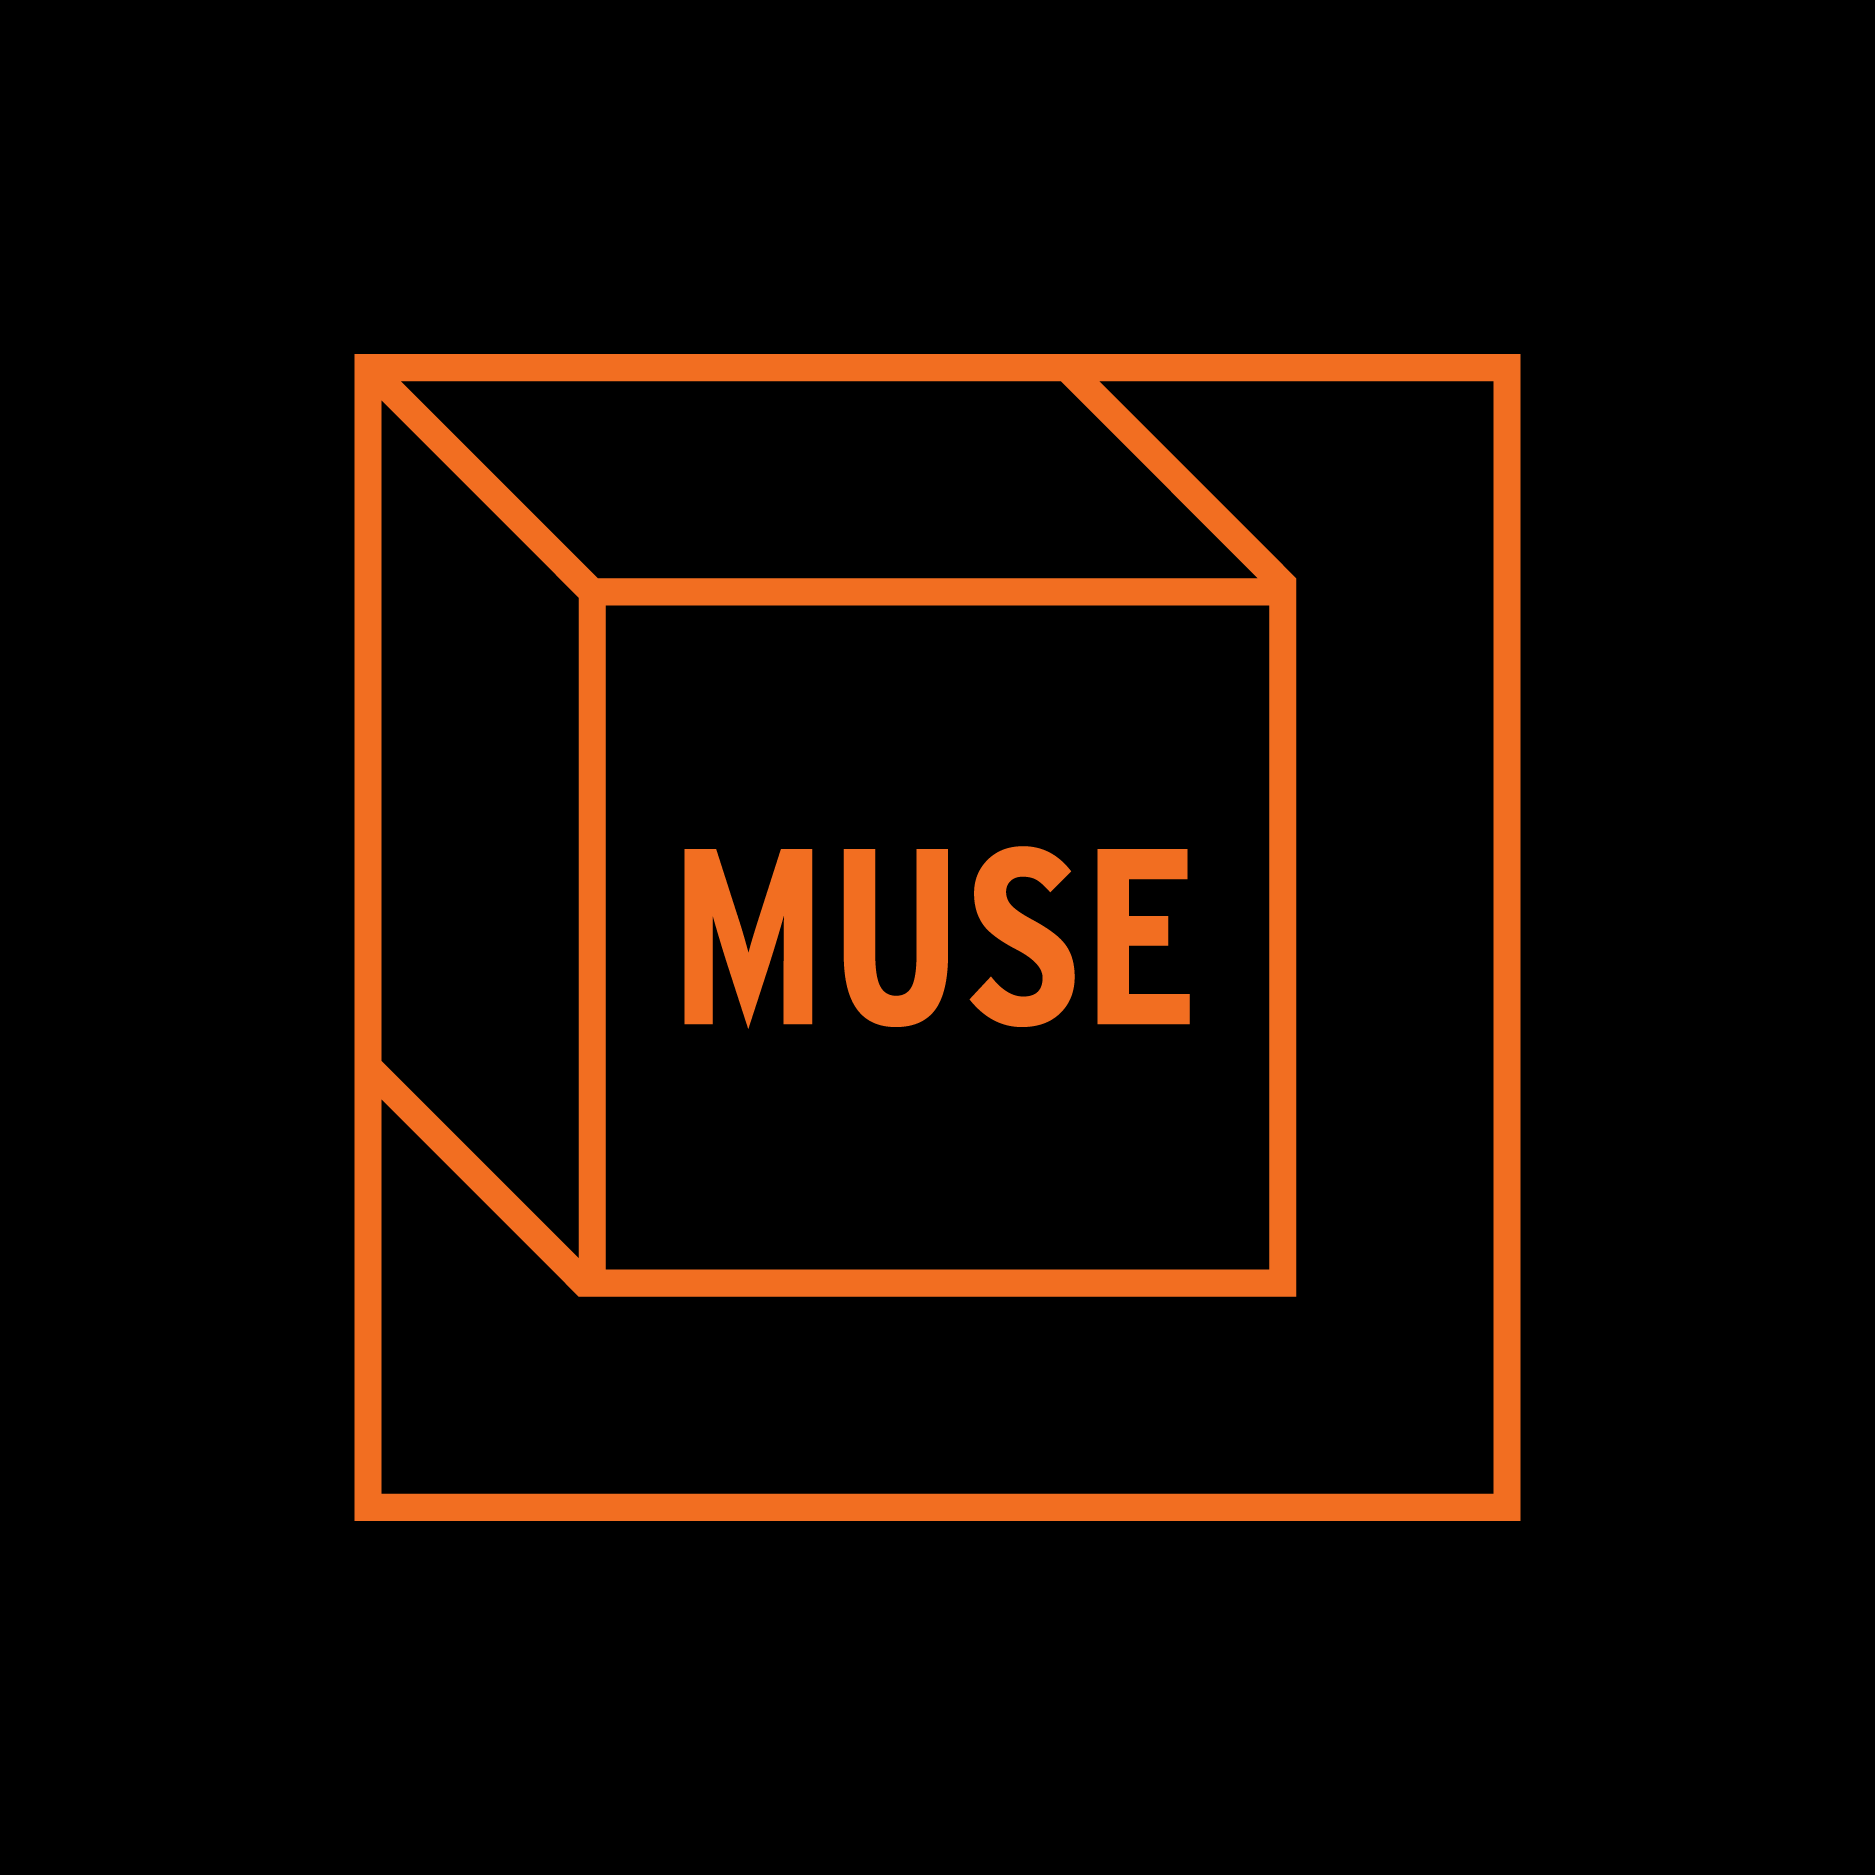 Muse Wallpapers